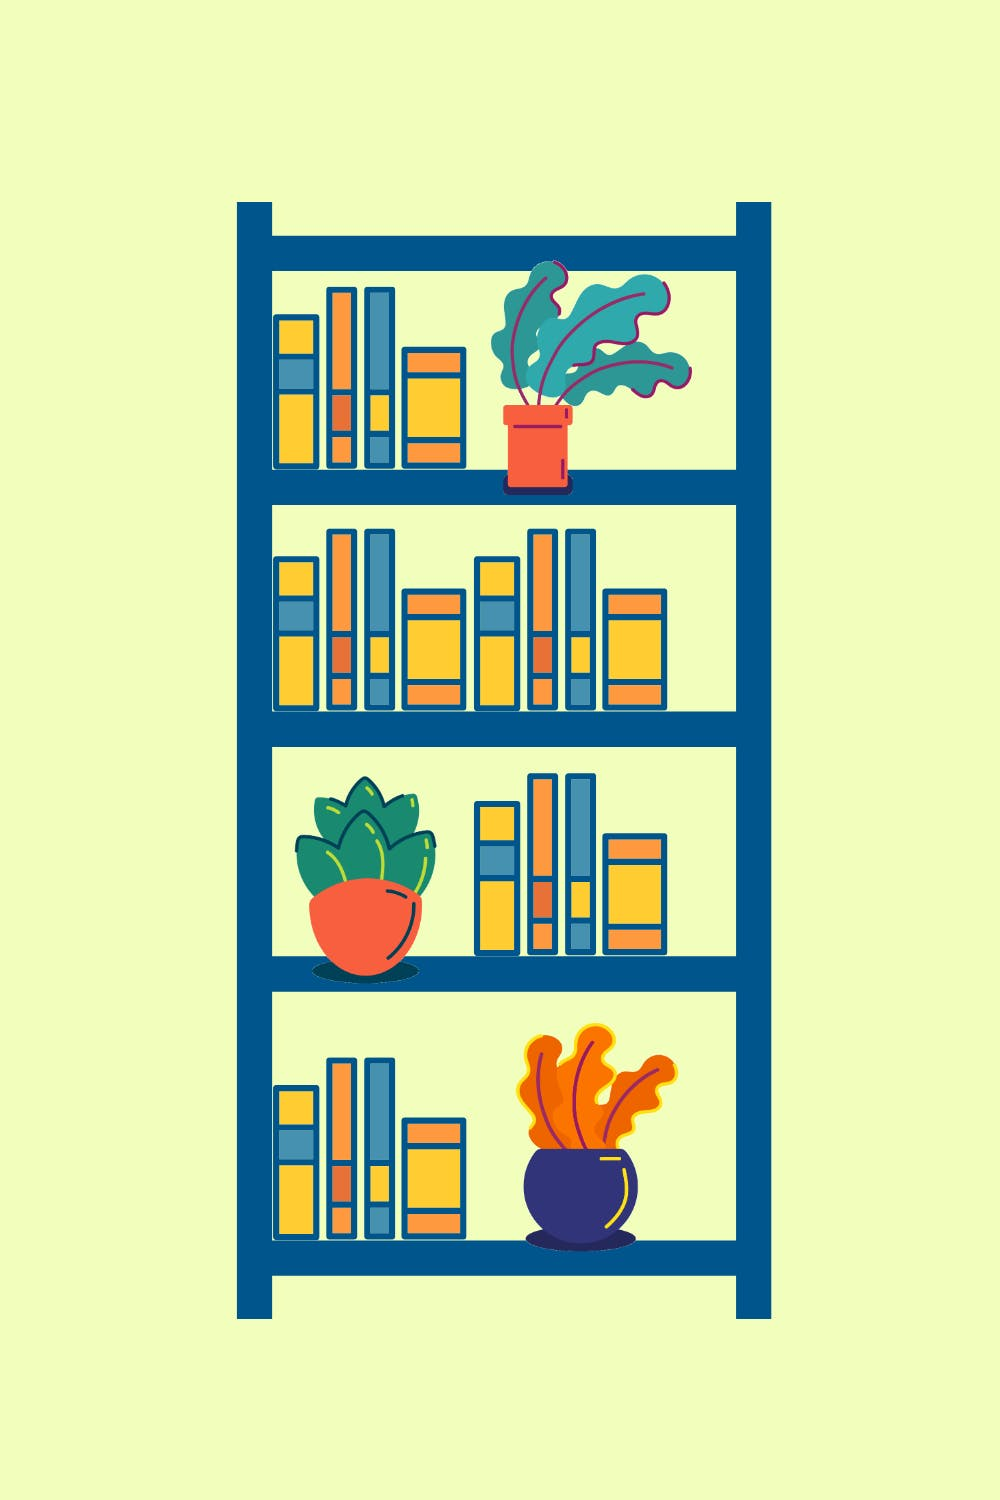 graphic of a bookshelf with books and a few plants on it